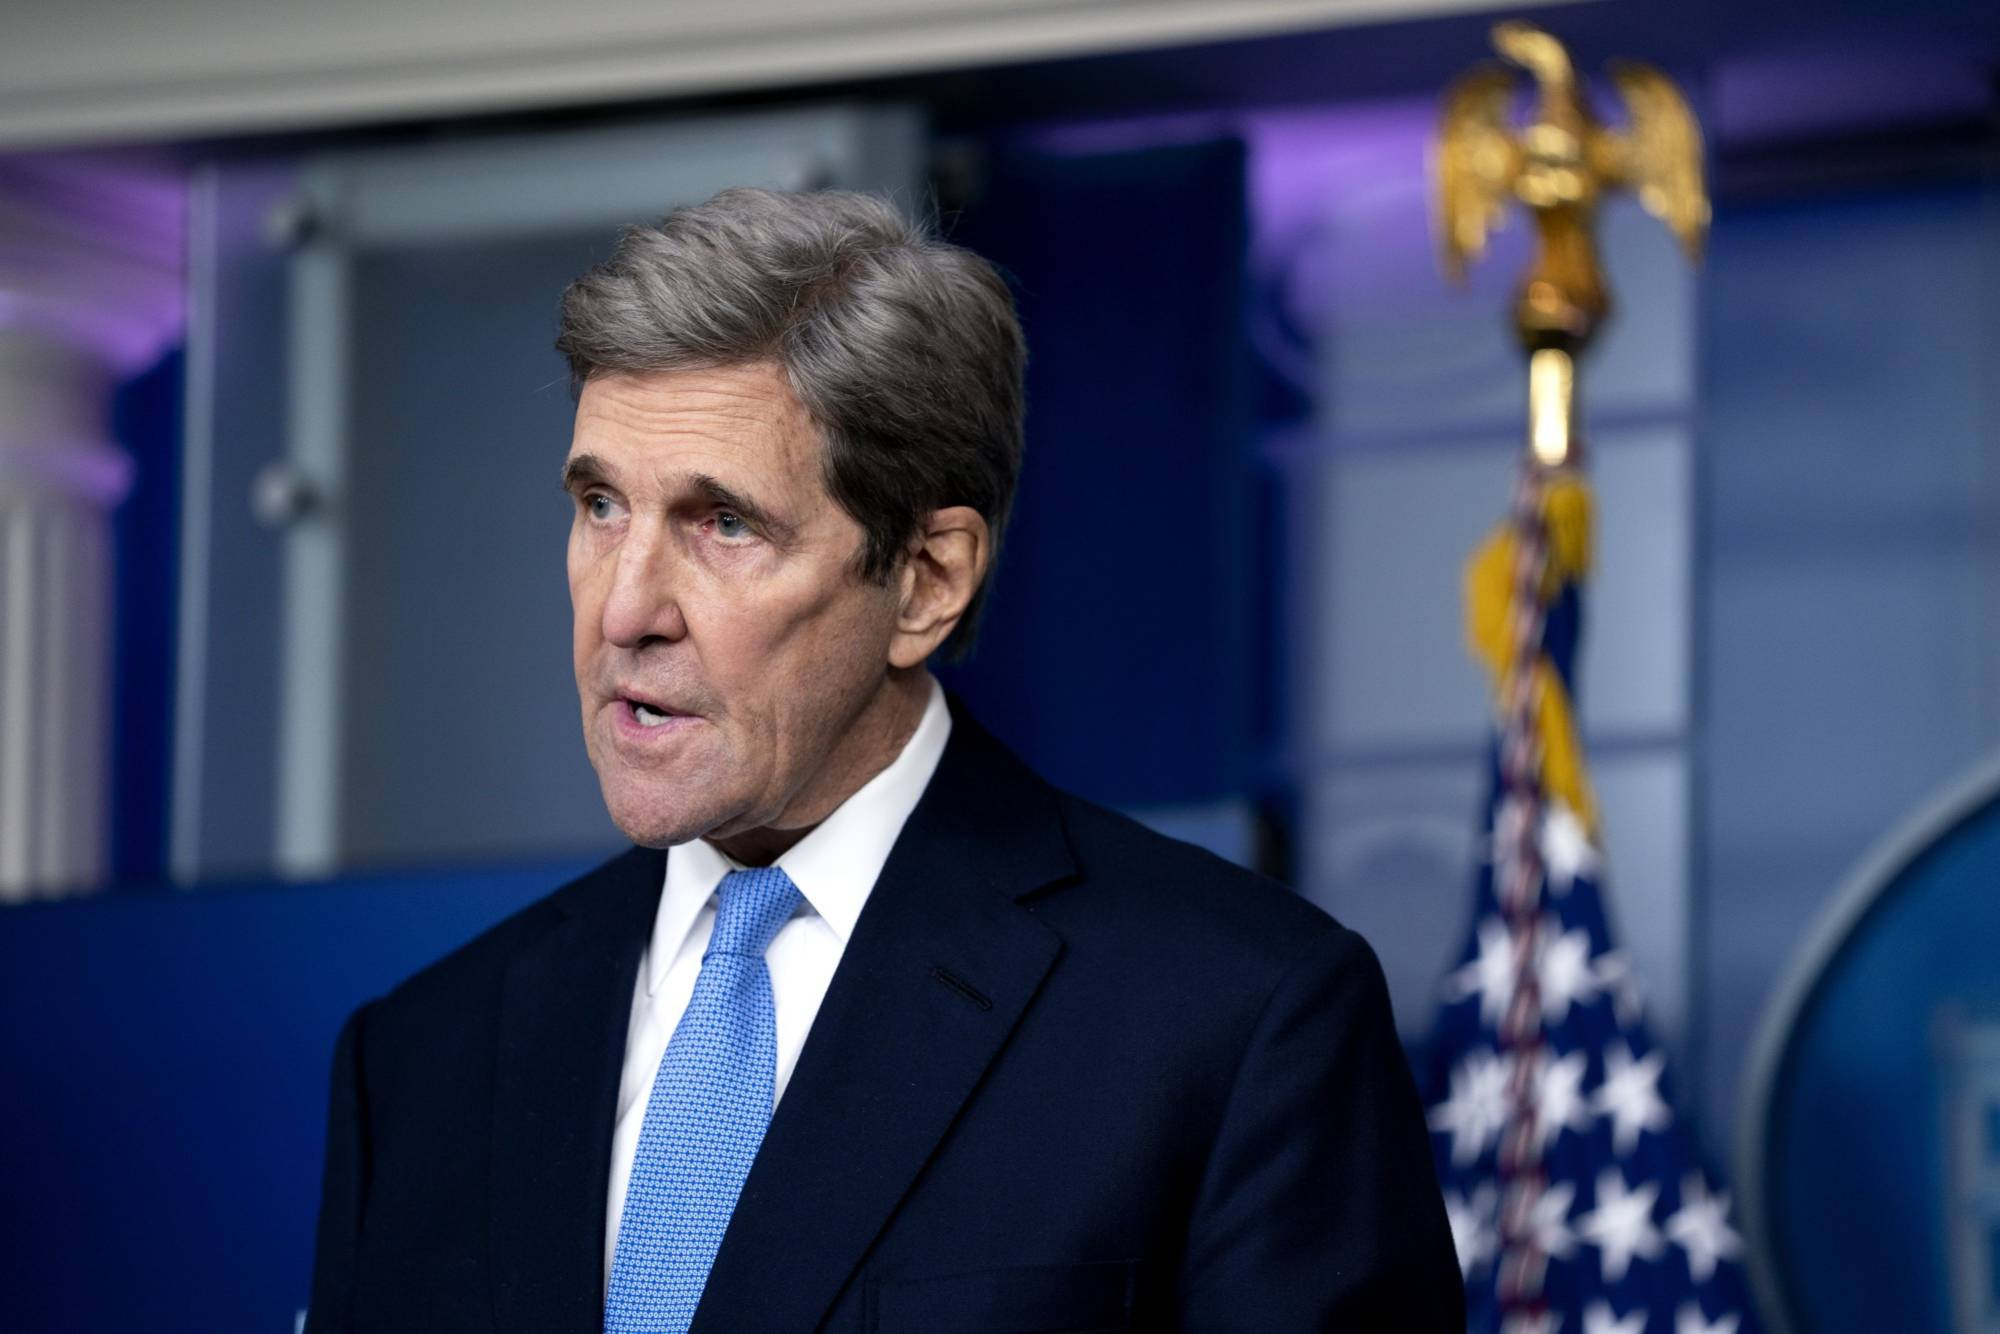 John Kerry, special envoy for climate in the administration of U.S. President Joe Biden, speaks during a news conference at the White House in January.  | BLOOMBERG